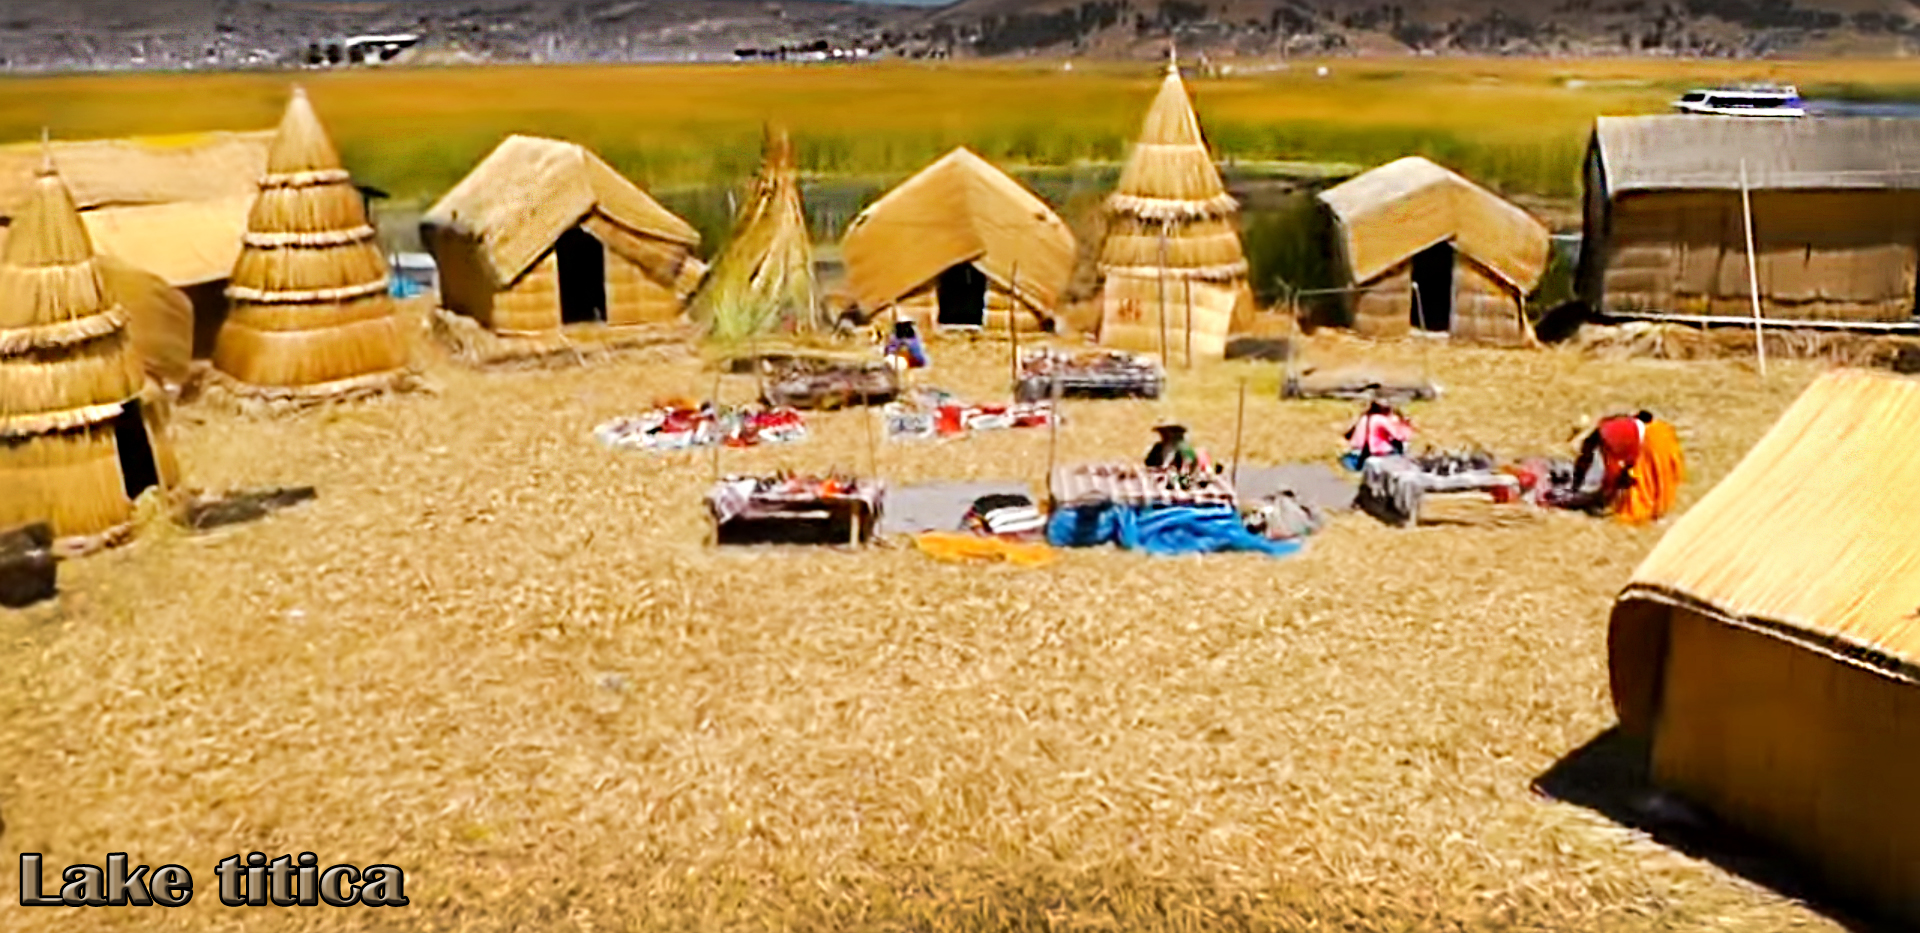 The floating Titicaca Lake islands are made entirely of cane by the Uros town.